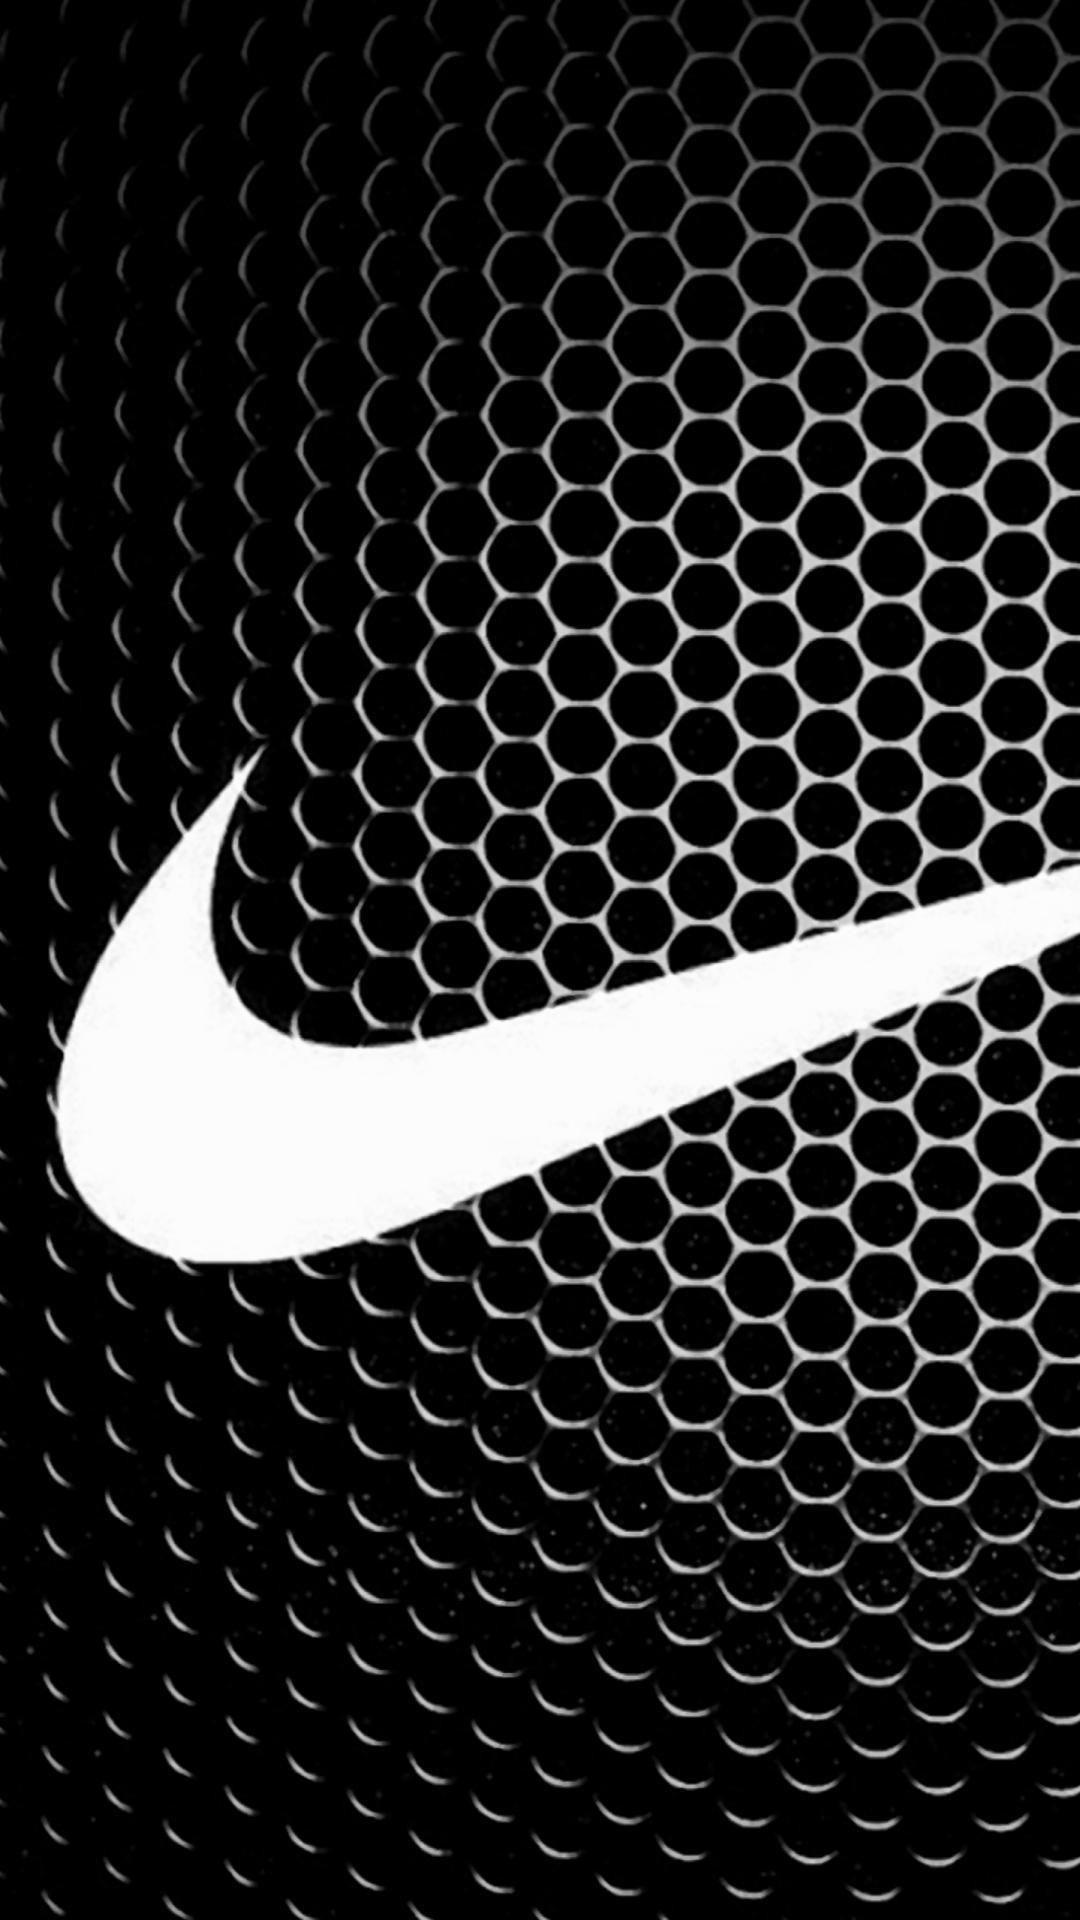 wallpaper.wiki-Nike-Wallpaper-HD-for-Iphone-PIC-